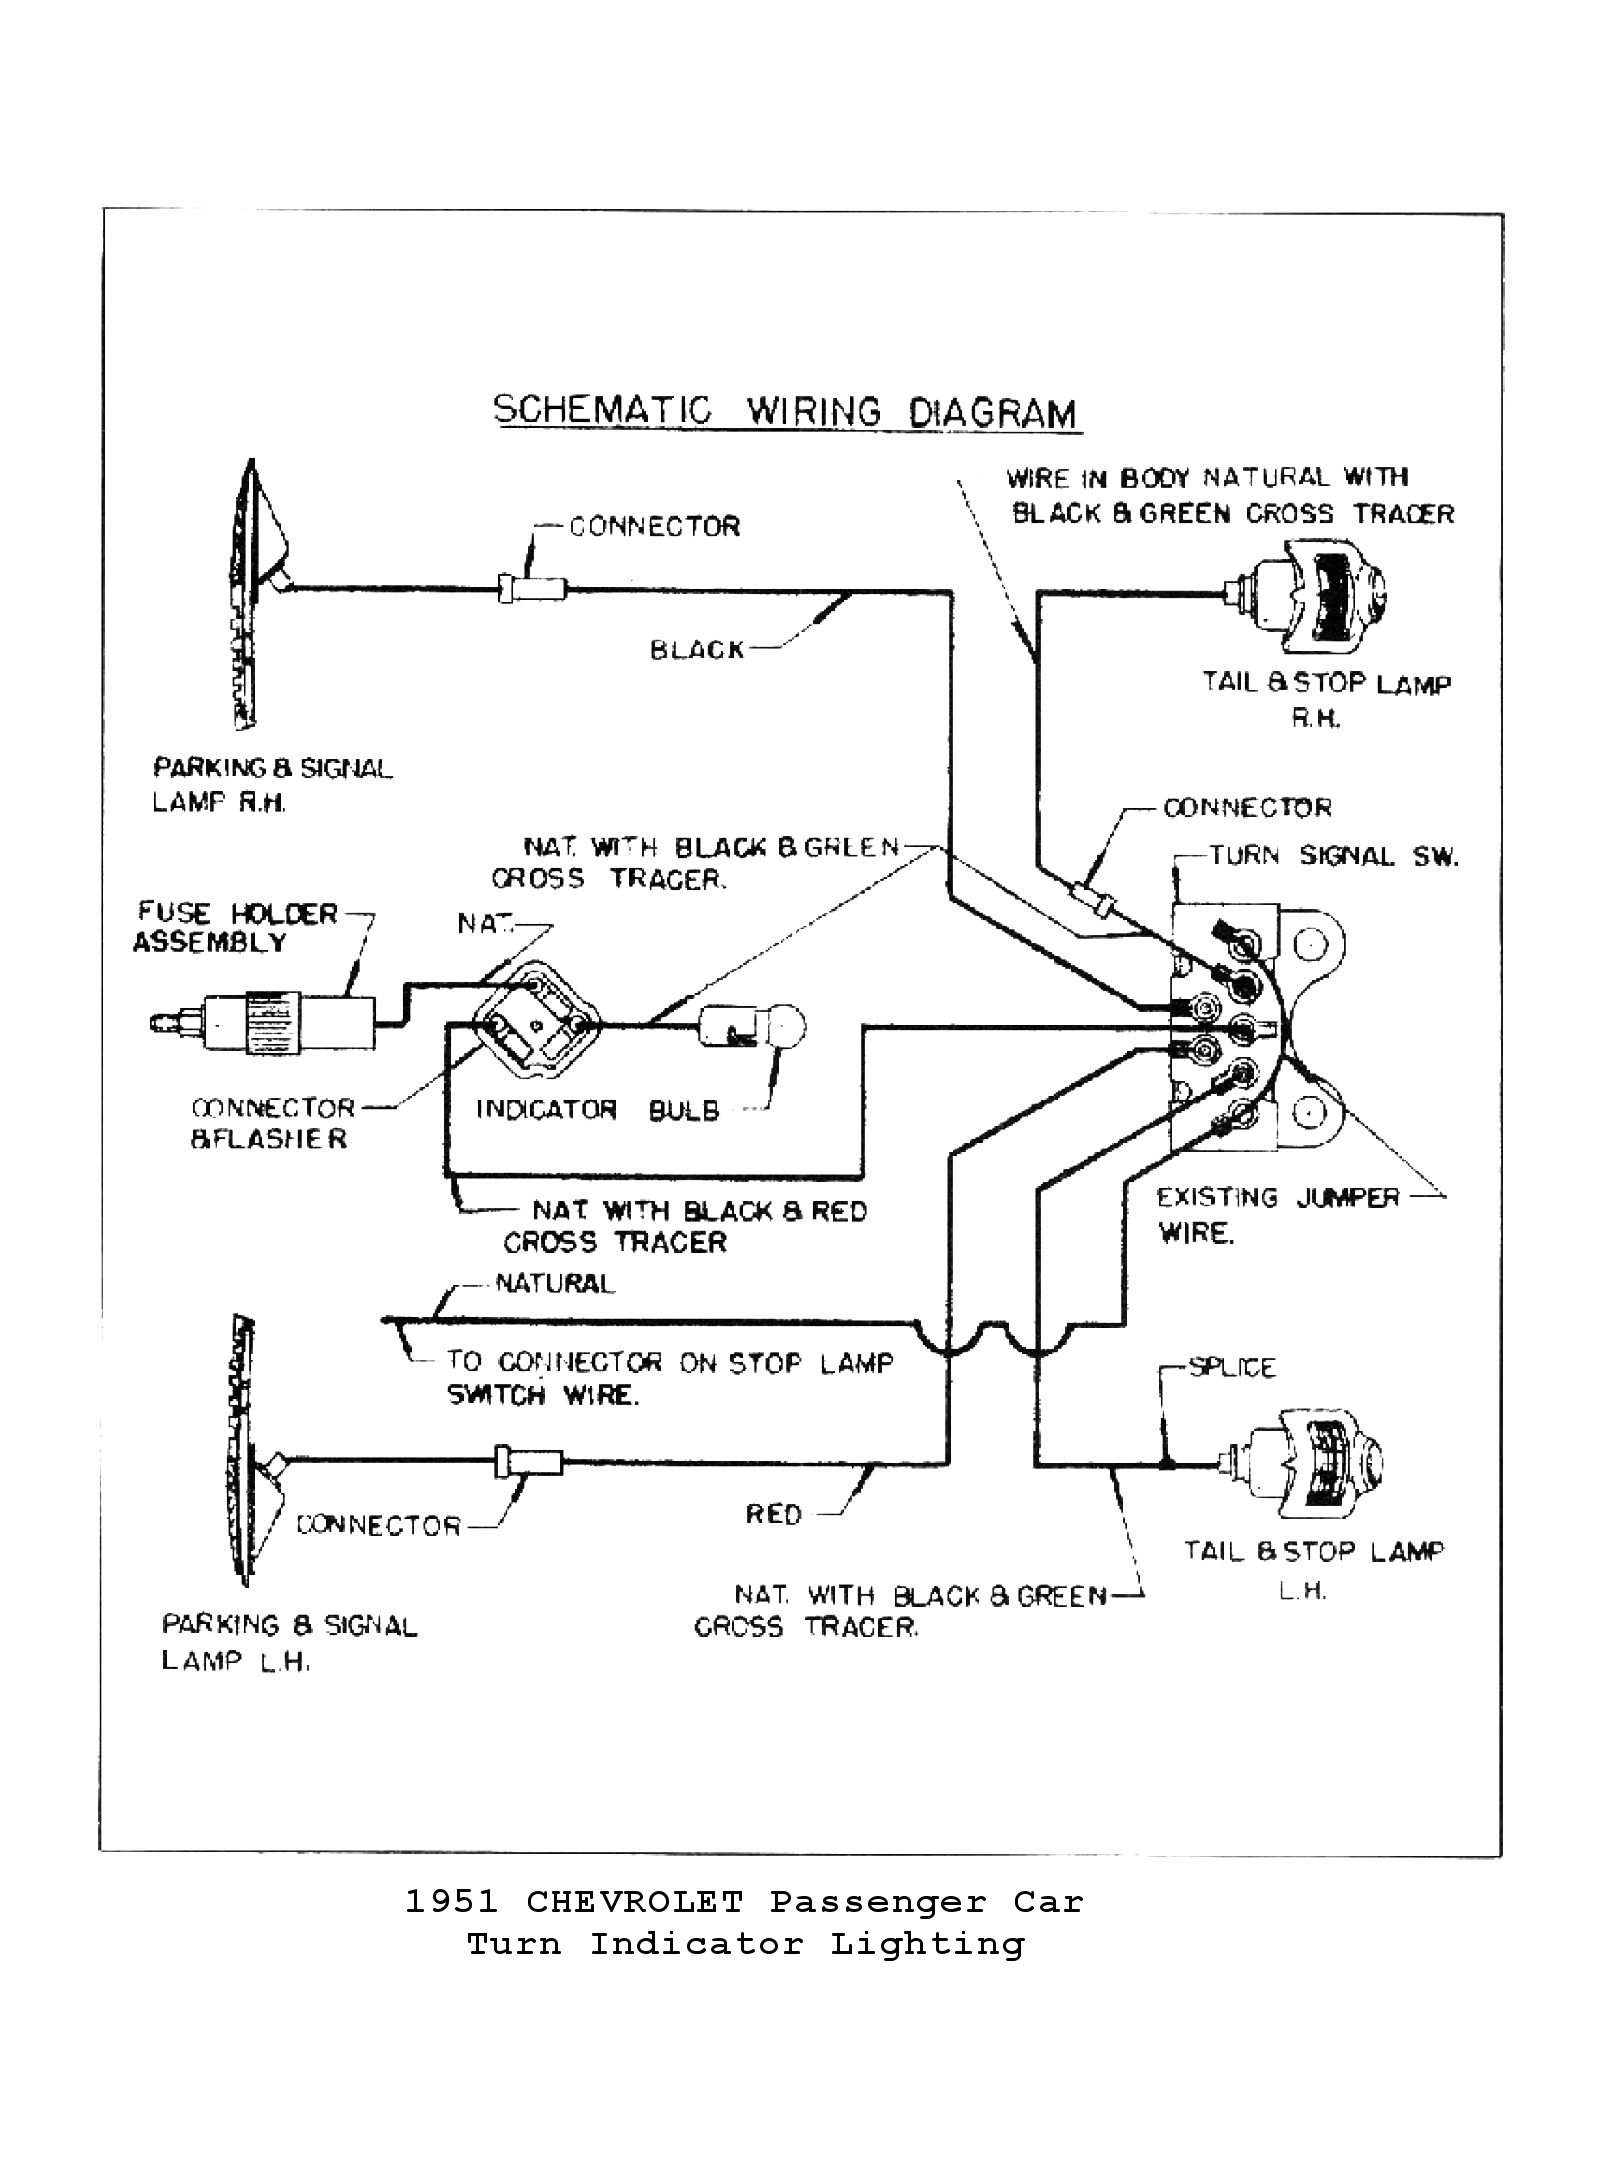 5152turnsignals 55 chevy heater diagram wiring schematic wiring diagram simonand 66 Chevy Headlight Switch Wiring Diagram at bayanpartner.co